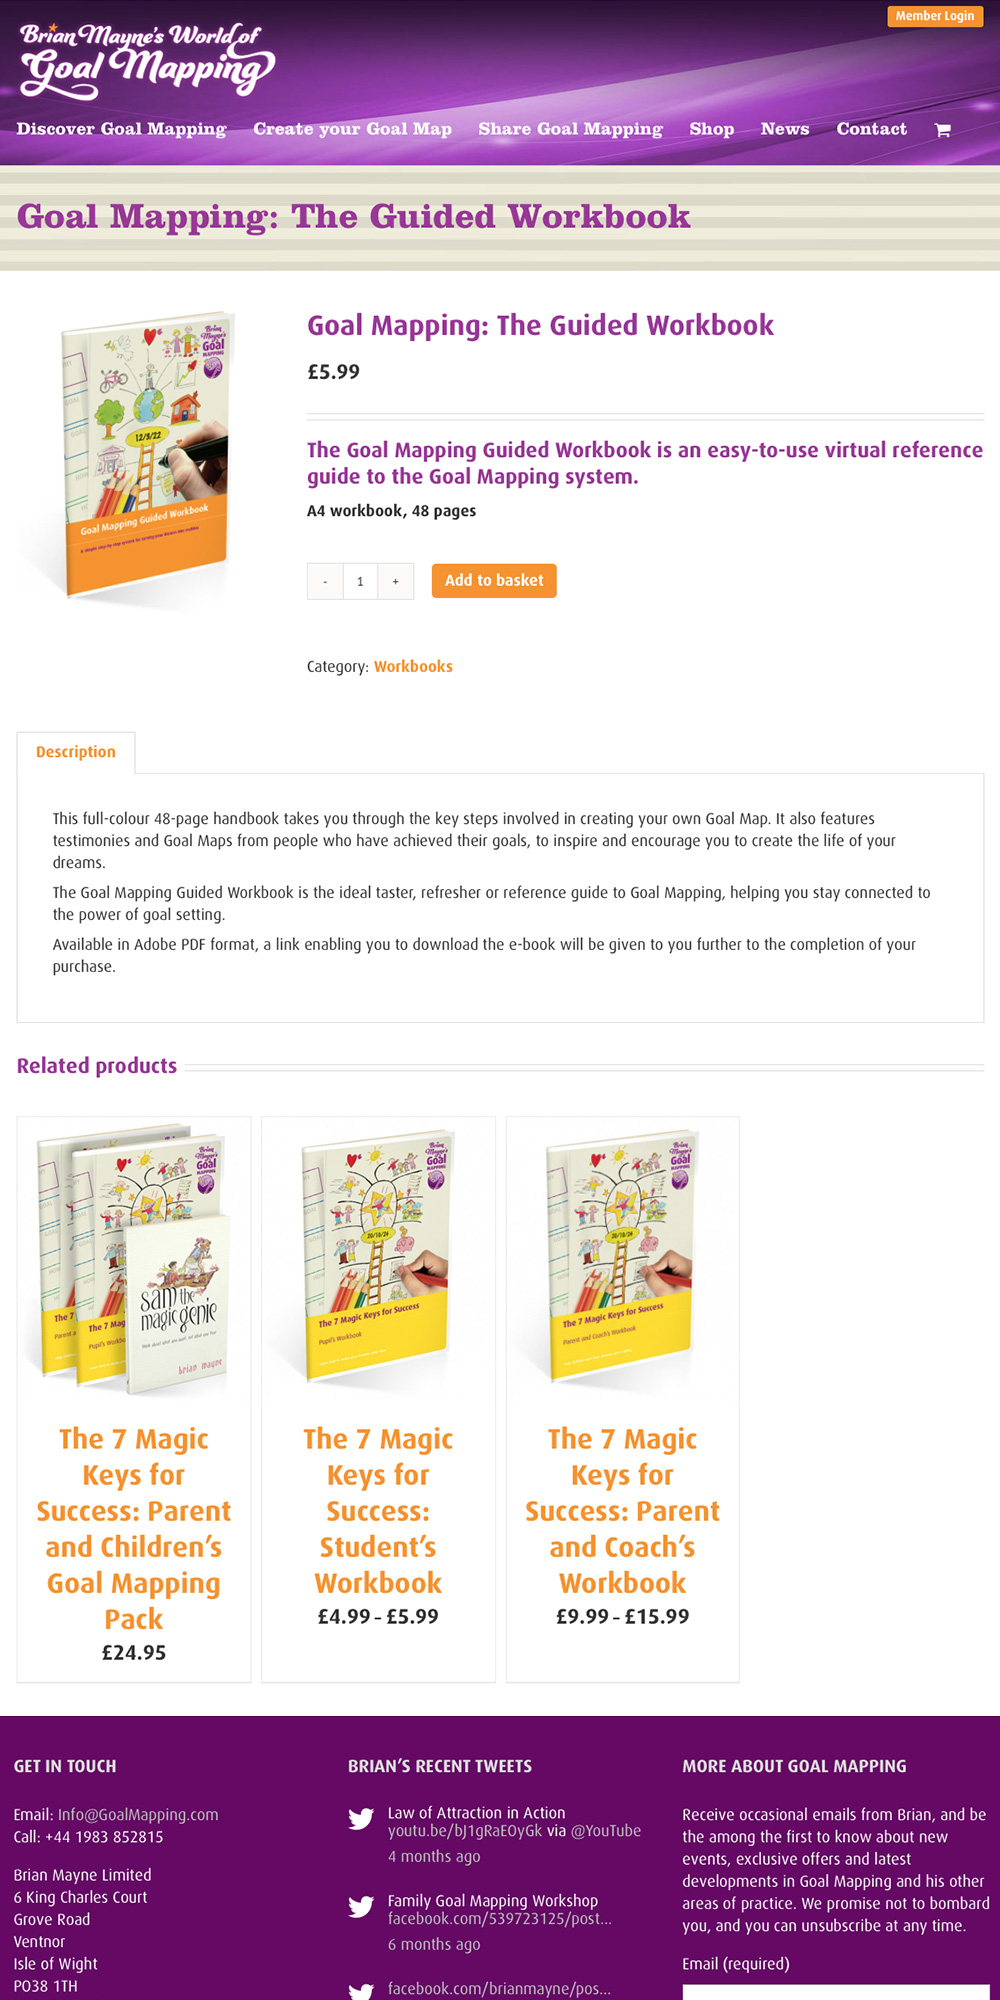 Brian Mayne's World of Goal Mapping website shop